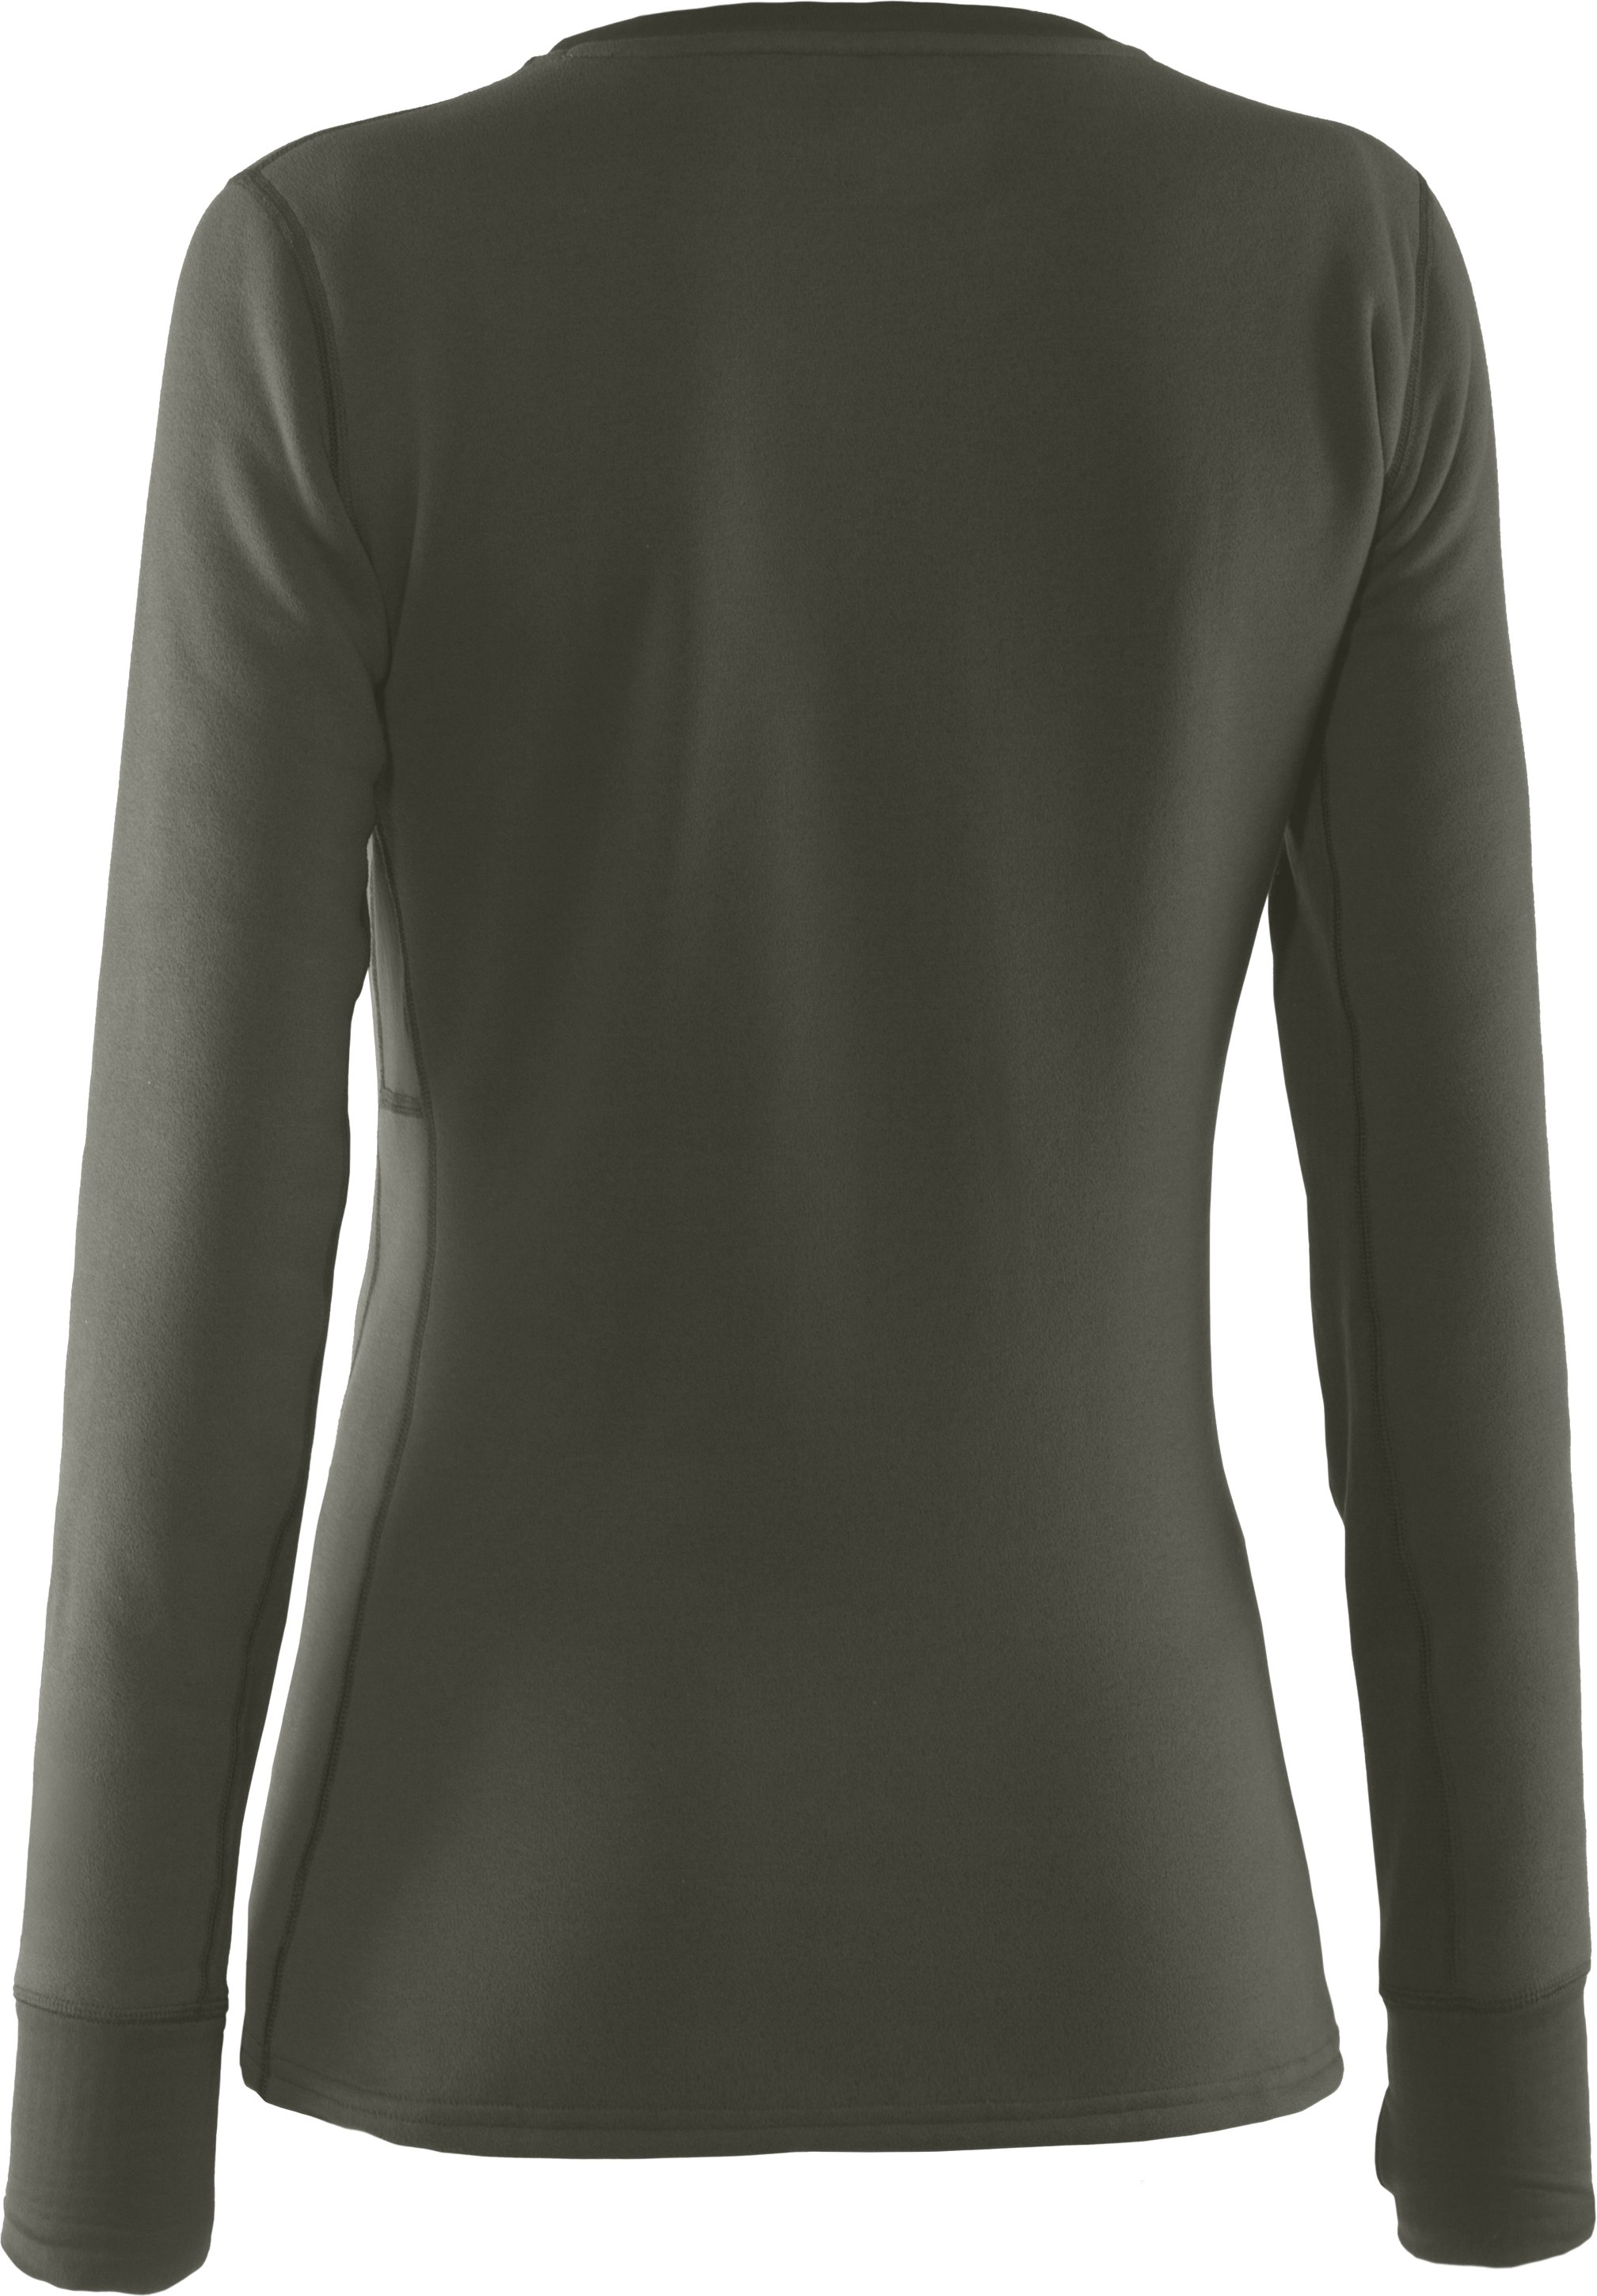 Women's Extreme ColdGear® Base Crew, Rifle Green